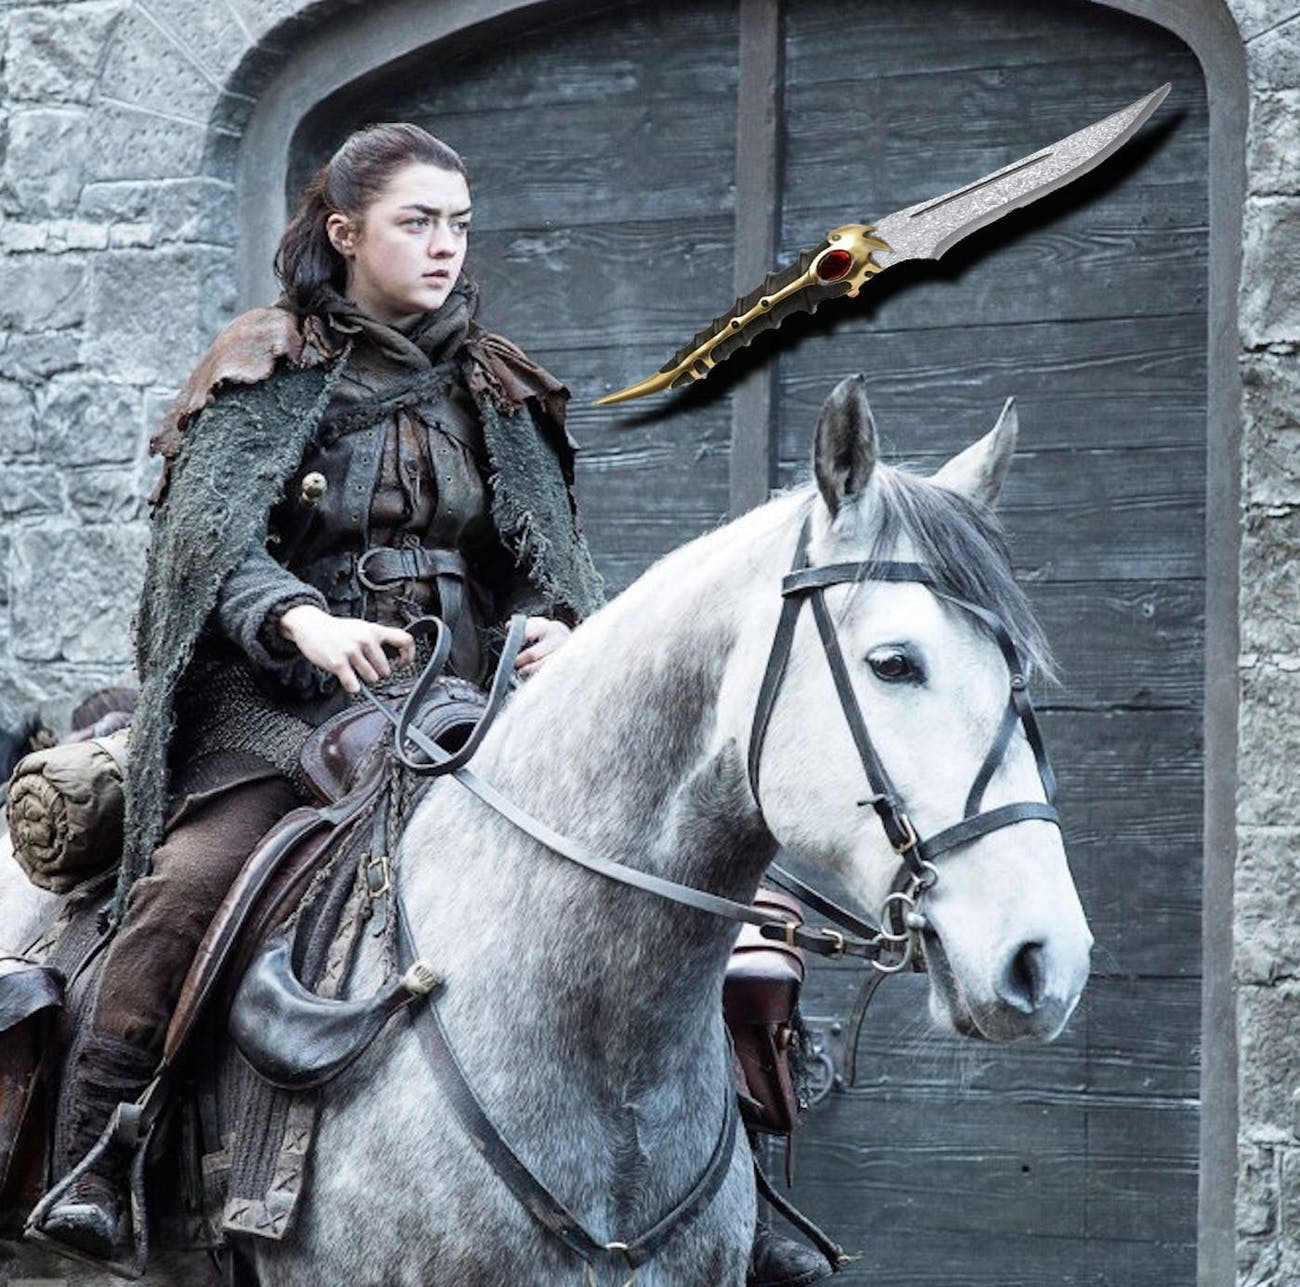 Looks like Arya will acquire this ancient dagger.